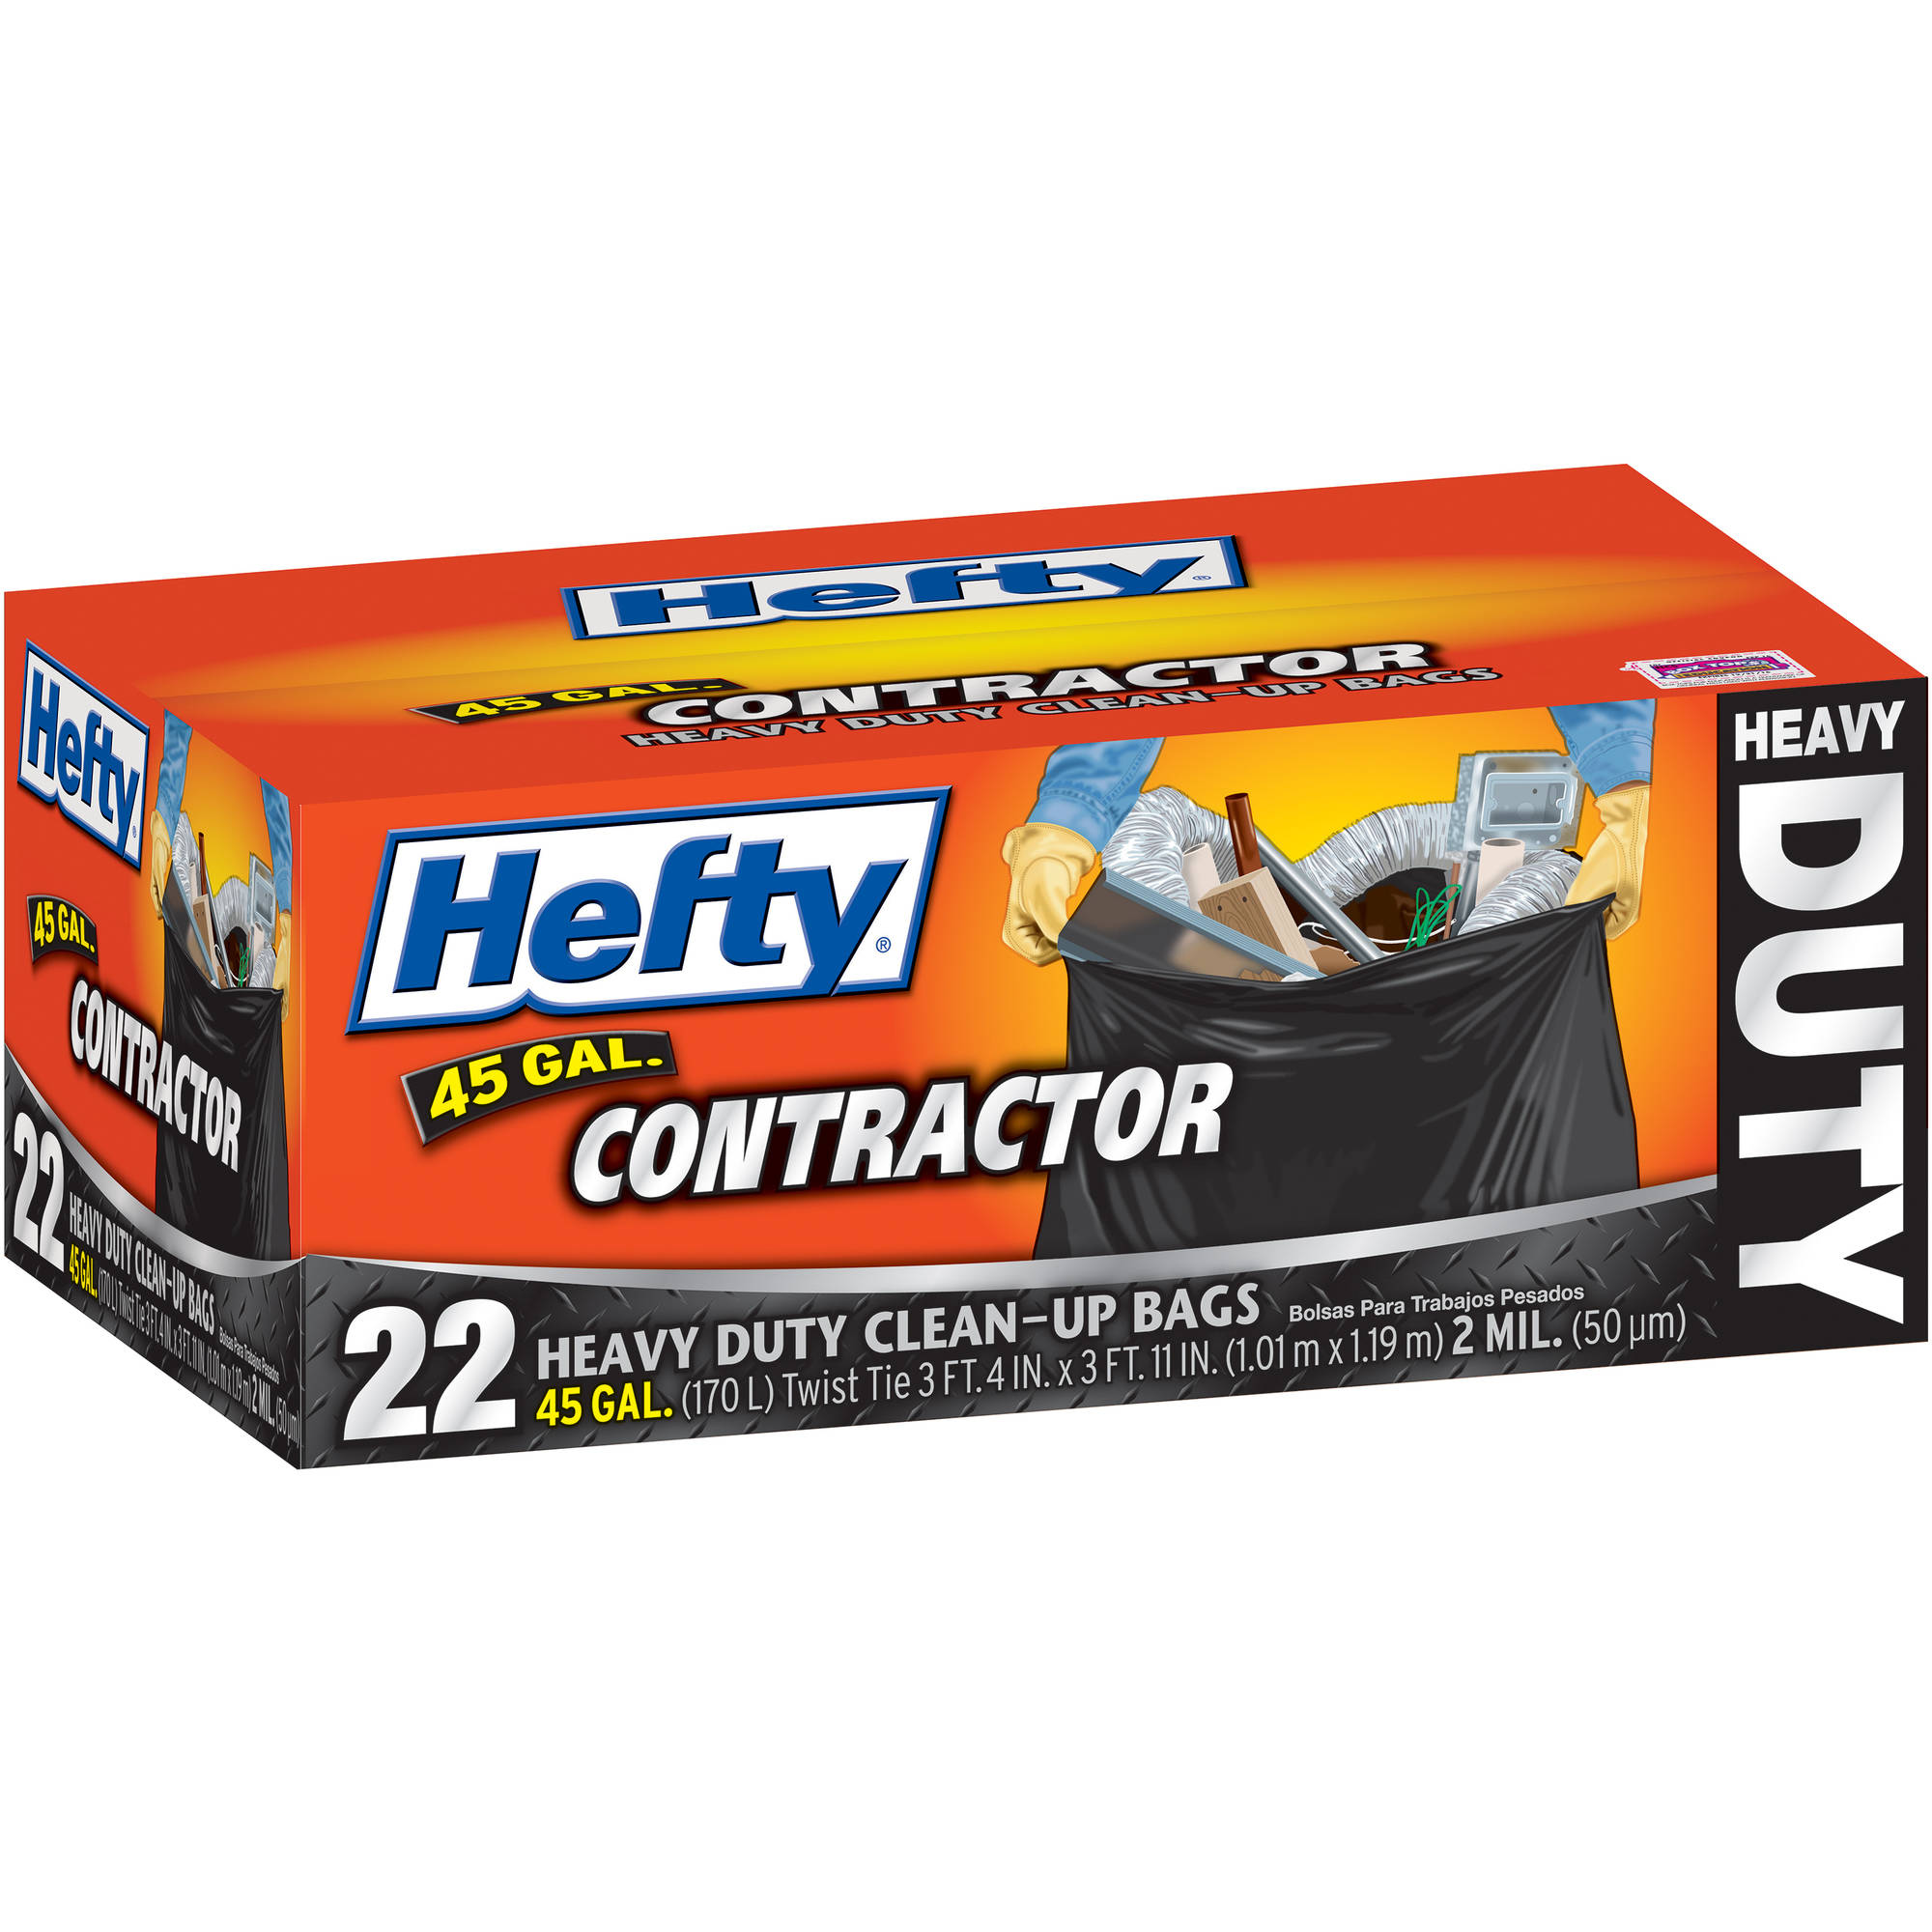 Hefty 45 Gallon Contractor Bags, 22ct